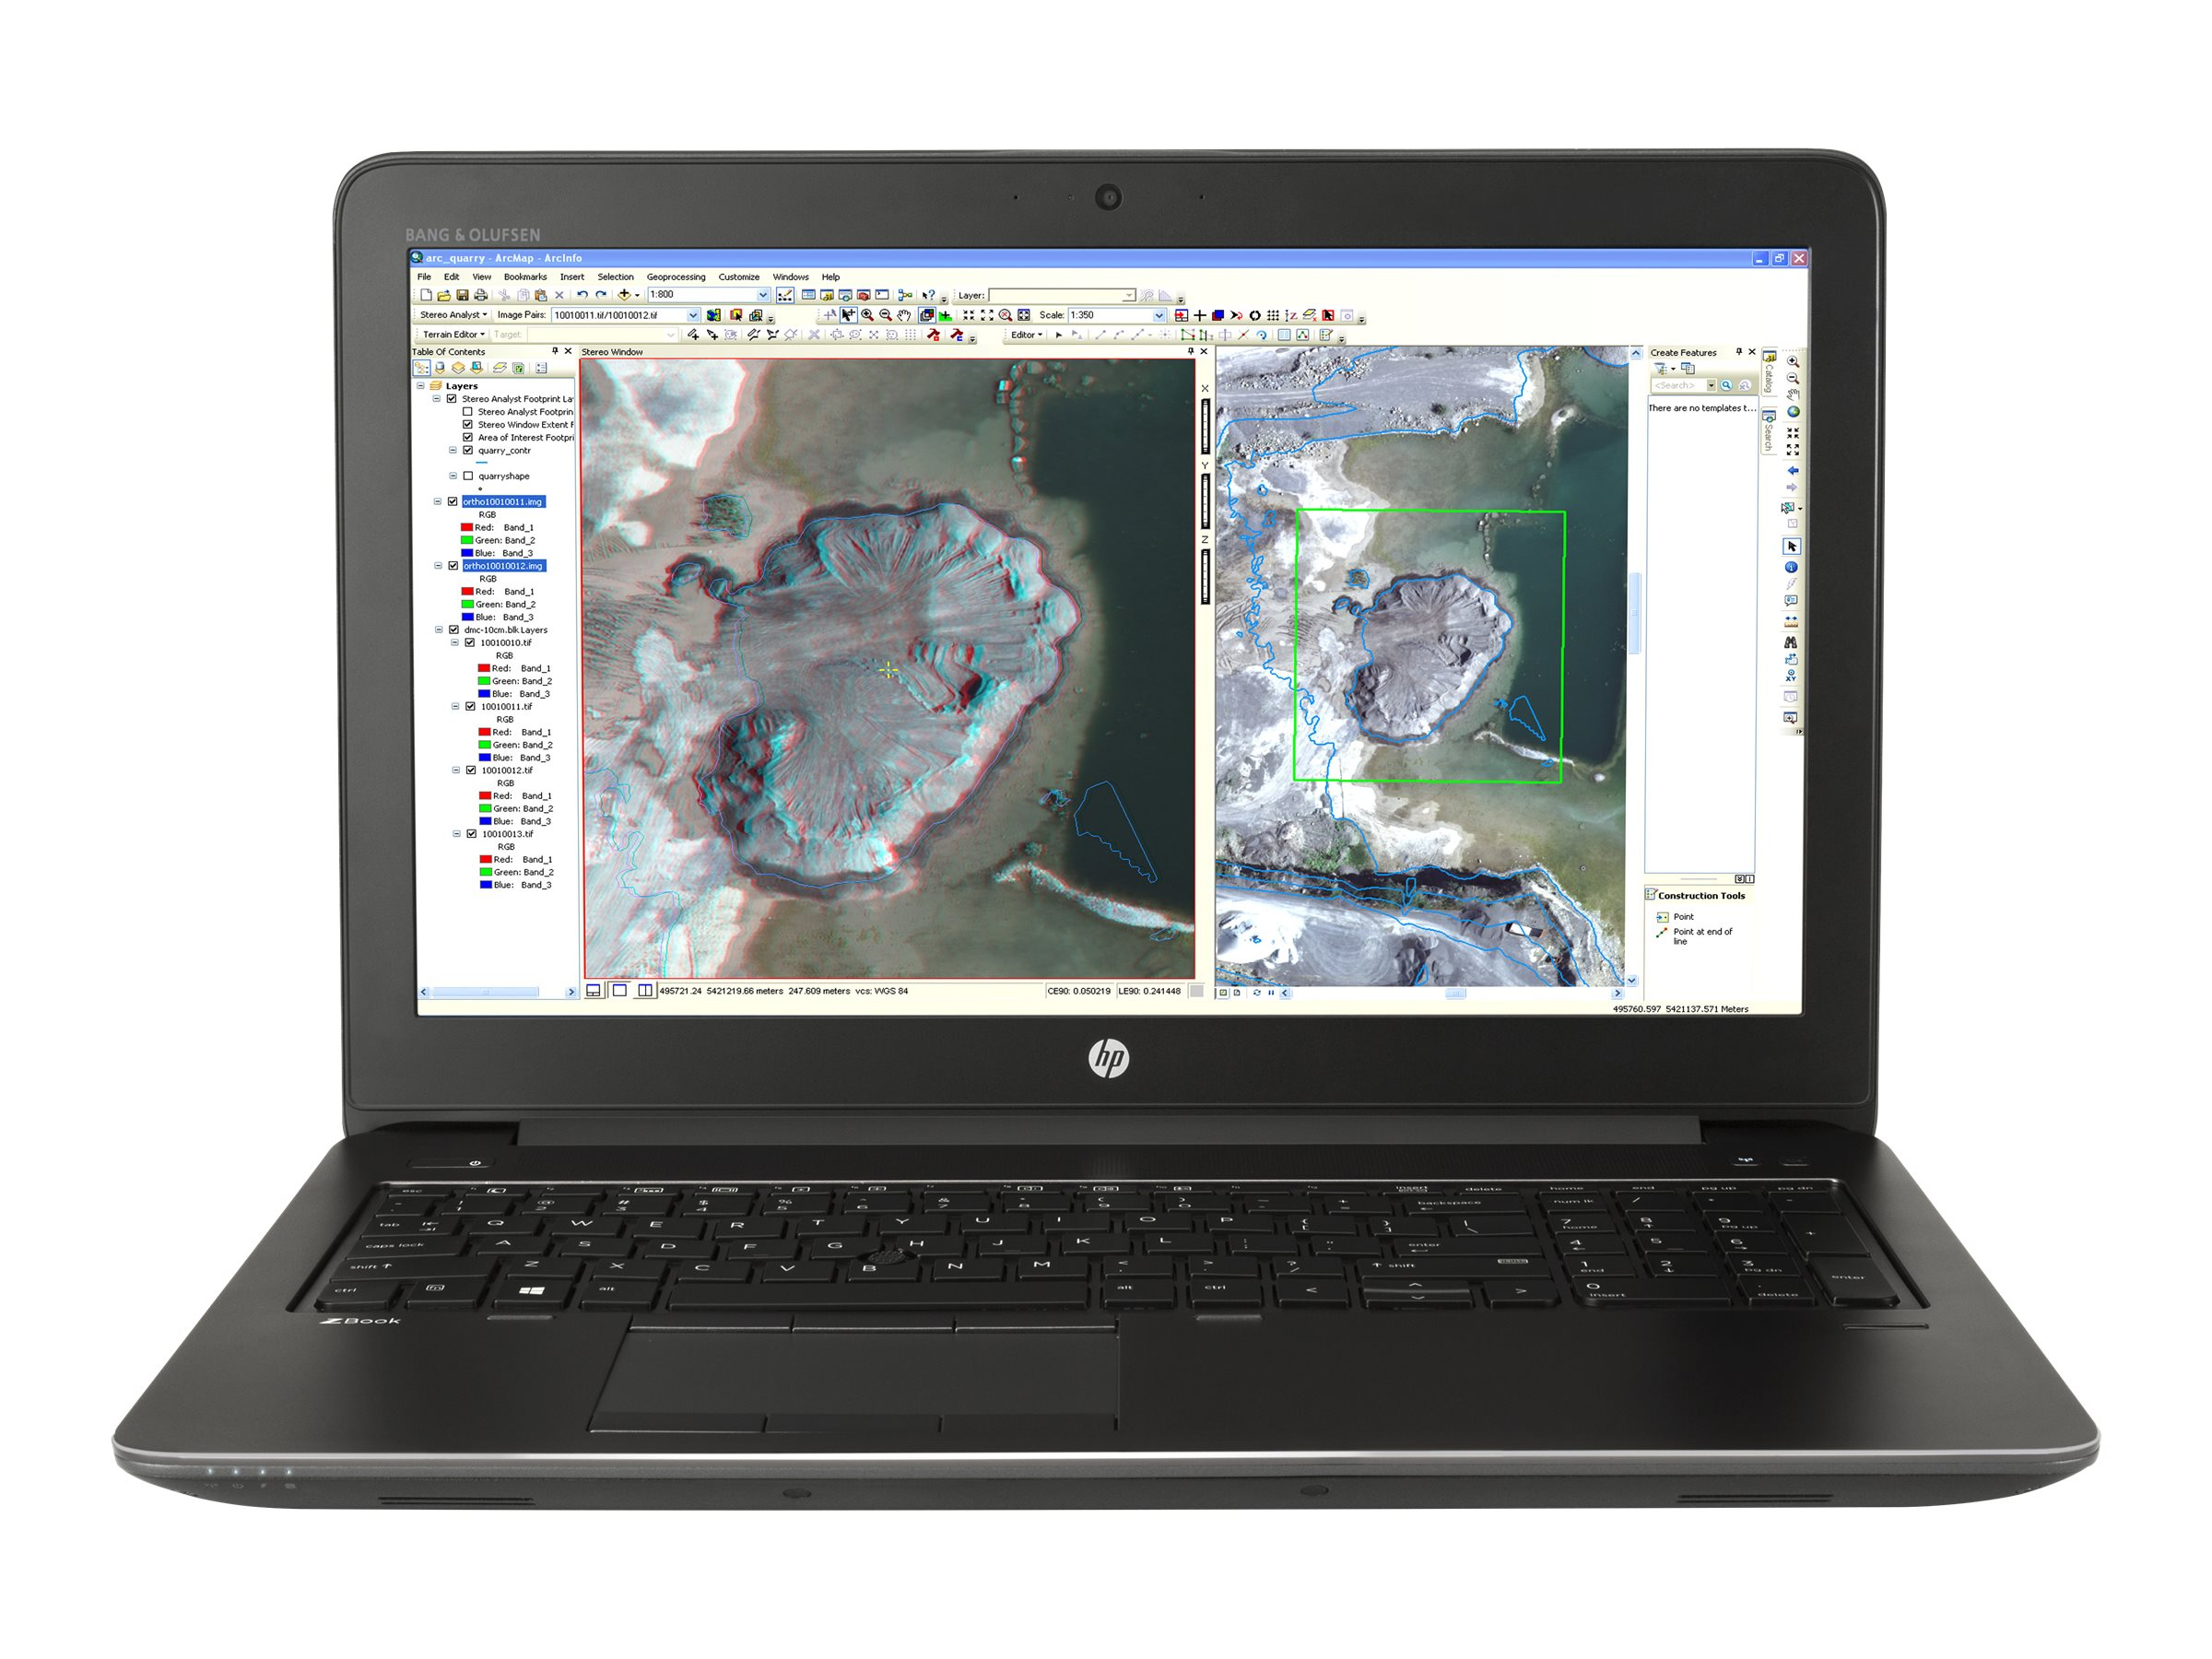 HP ZBook 15 G3 Core i7-6700HQ 2.6GHz 16GB 512GB ac BT FR WC 9C M1000M 15.6 FHD W7P64-W10P